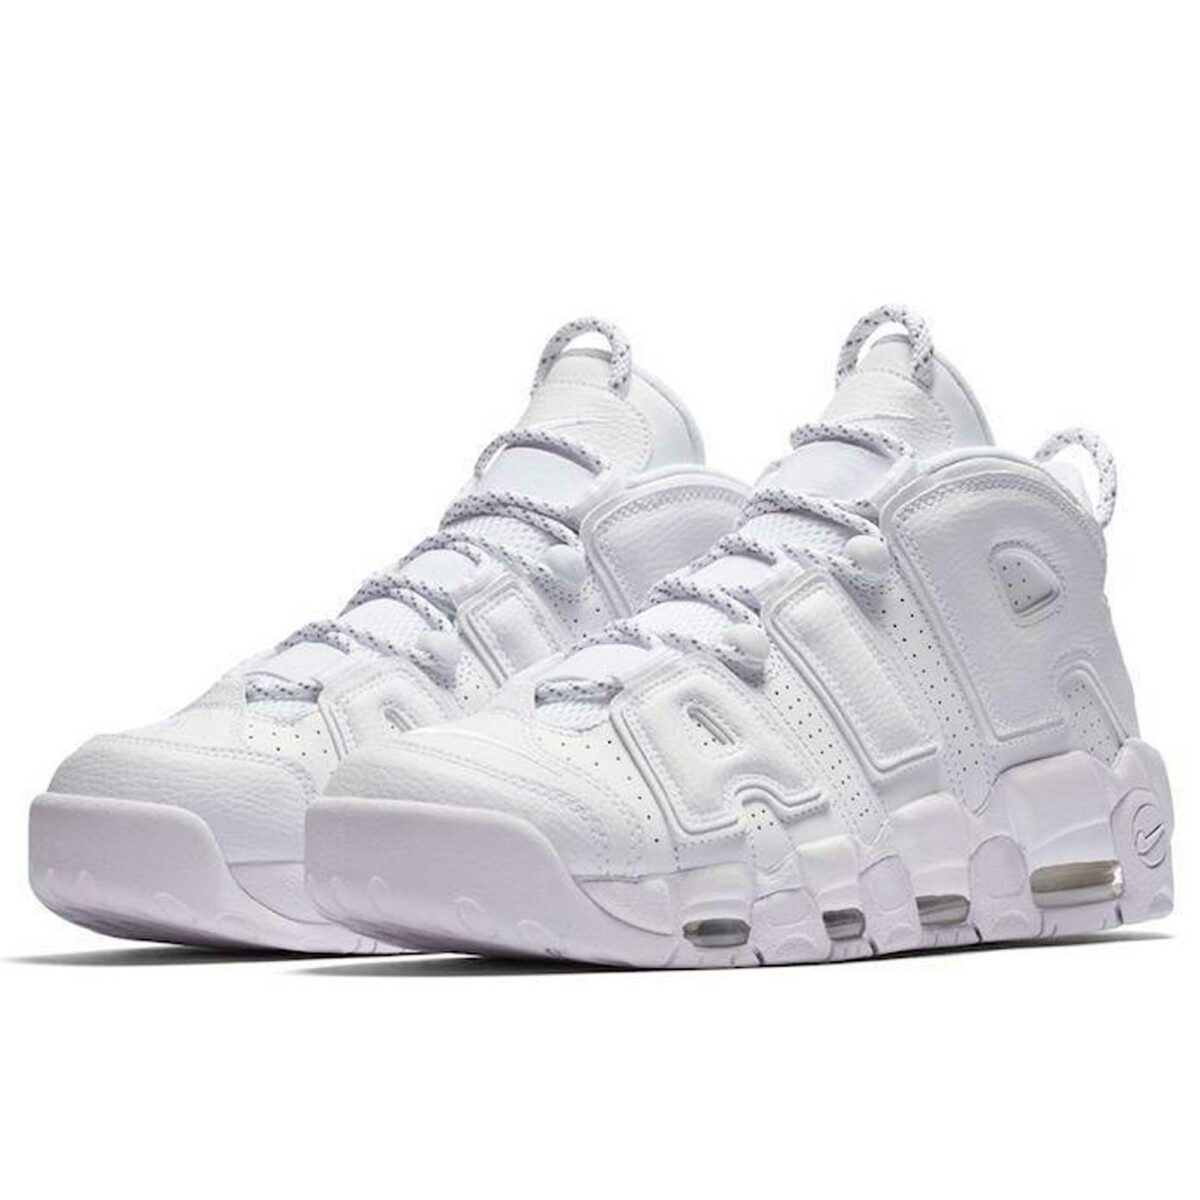 nike air more uptempo all white 921948-100 купить